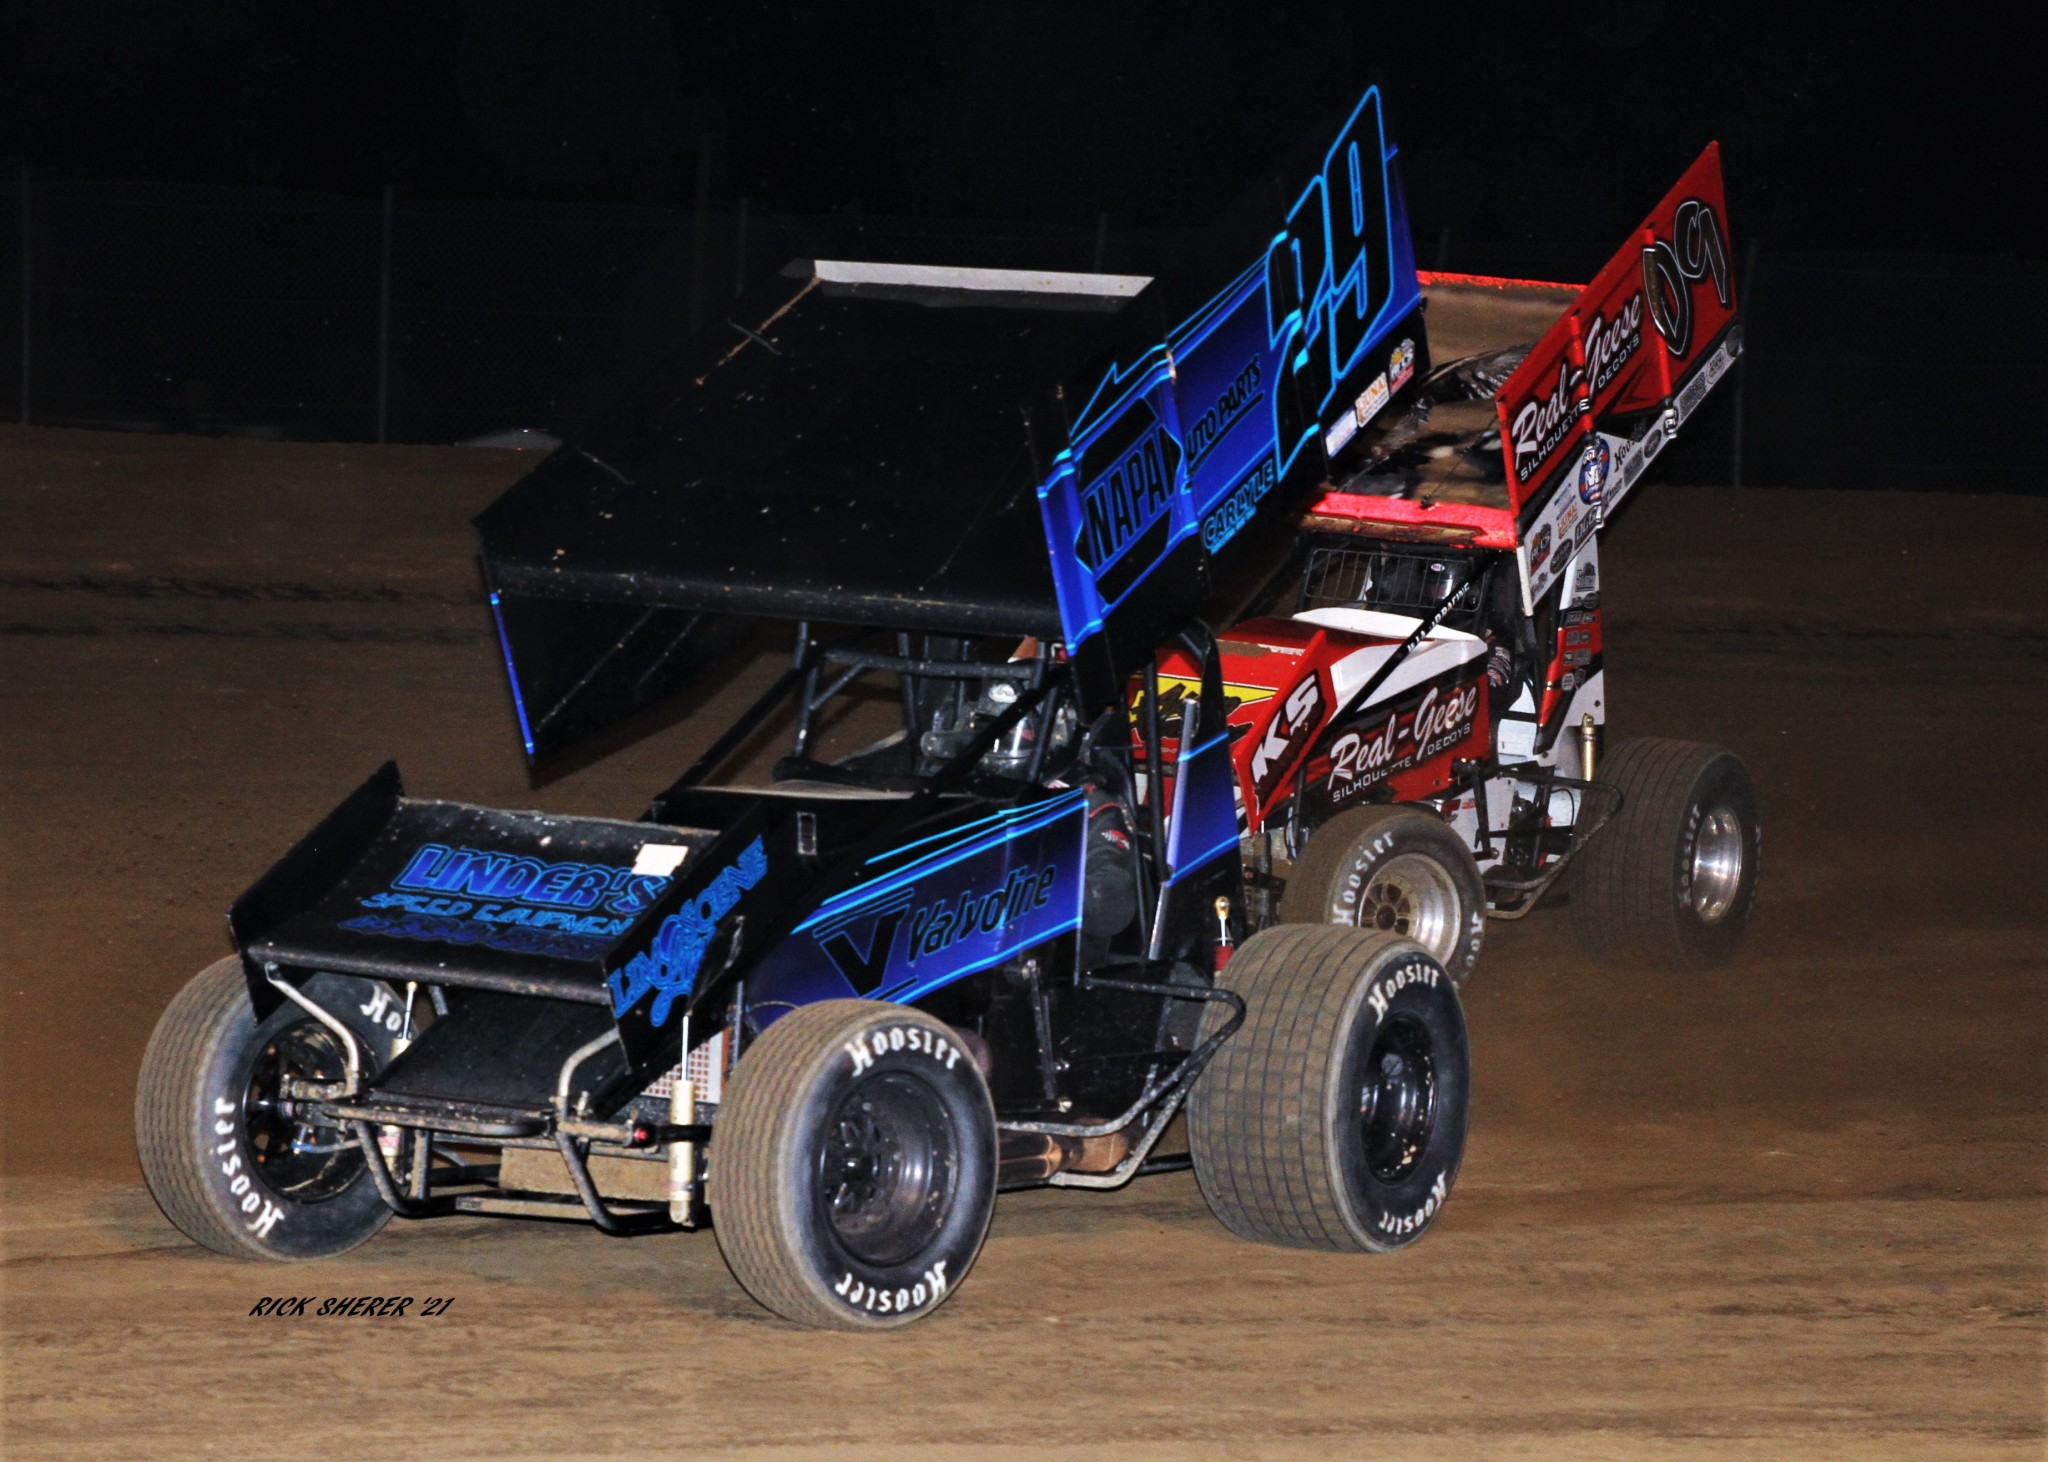 Gibsonburg wheelmen Stuart Brubaker (29) and Craig Mintz (09) go at it during the AFCS 410 Sprints feature at Attica Raceway Park. Mintz finished third and Brubaker was fourth. (Photo by Rick Sherer)